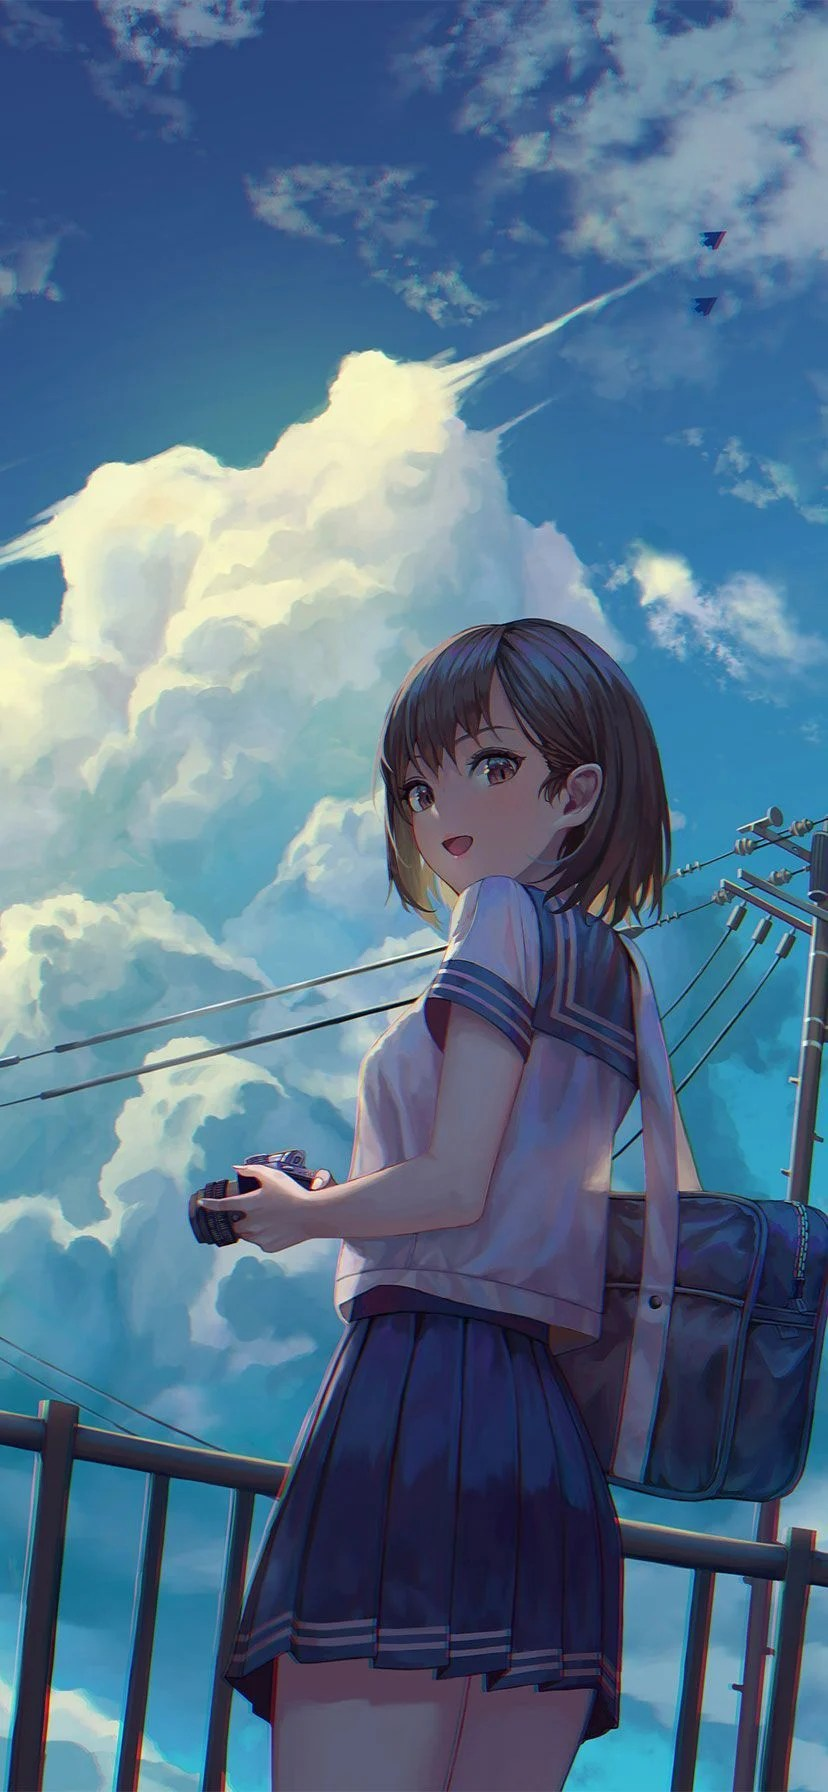 Iphone Xr Anime Wallpaper : iphone, anime, wallpaper, IPhone, Anime, Wallpapers, Wallpaper